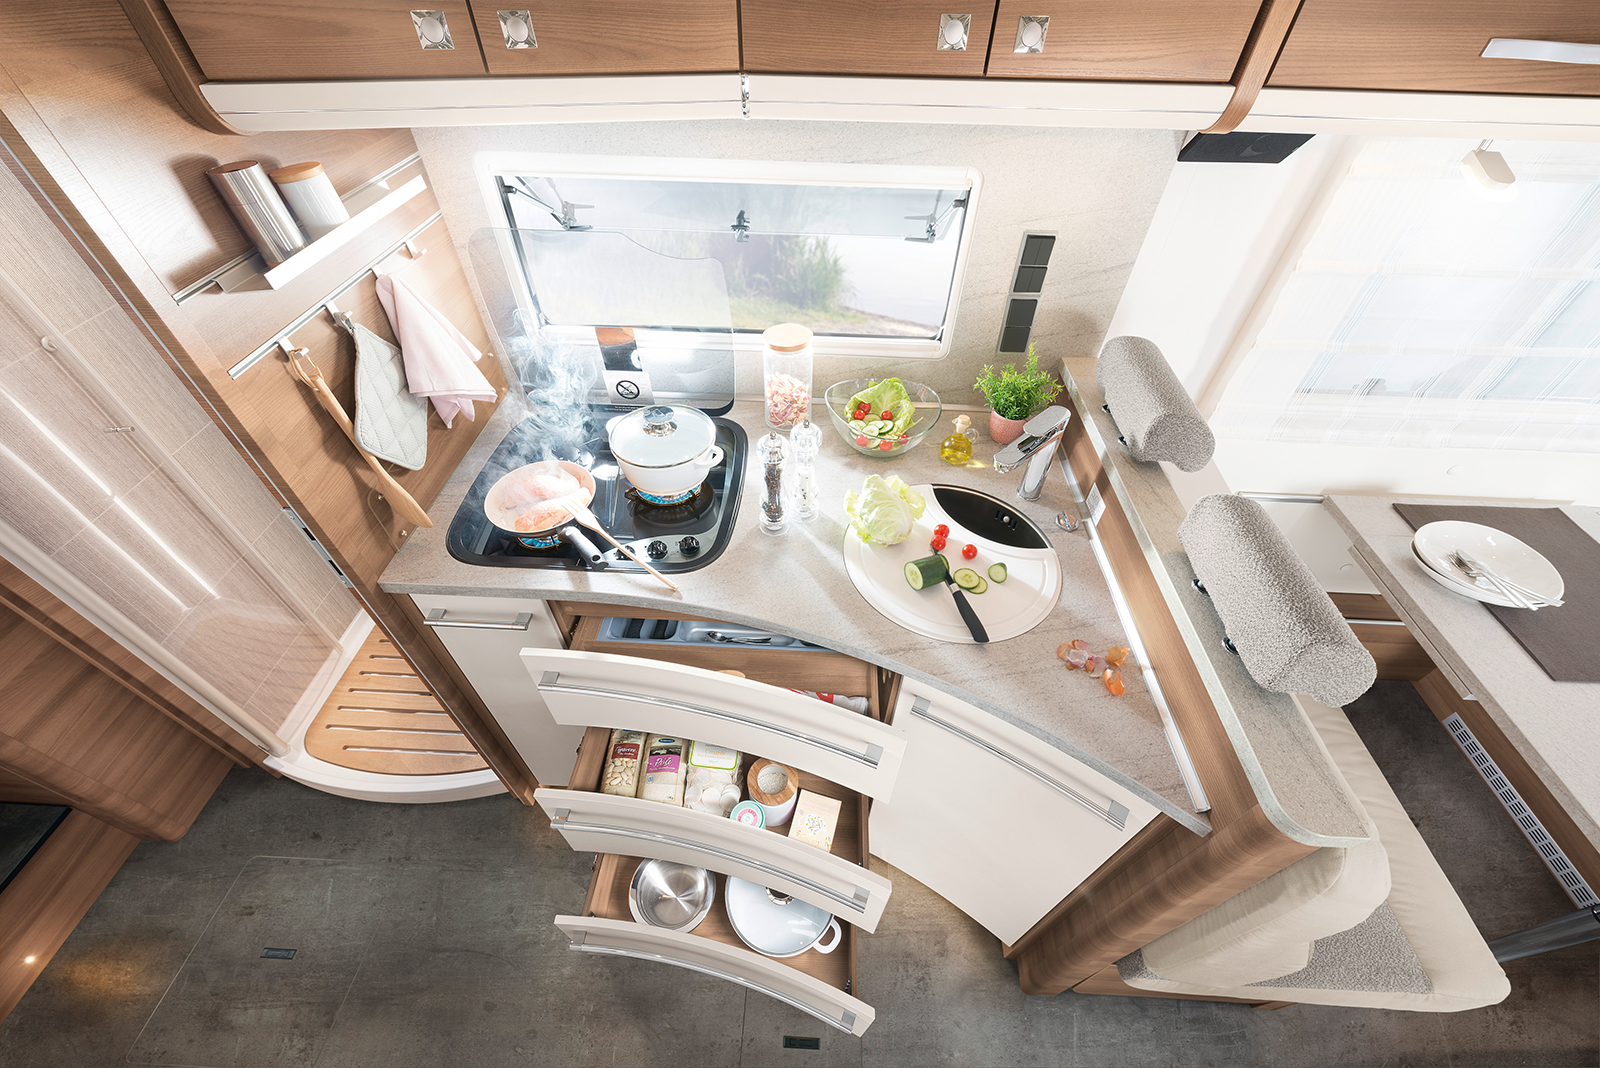 Big motorhome, big cooking fun! So much space and elbow room is offered by the Dethleffs premium class – and all that in befitting exclusive design